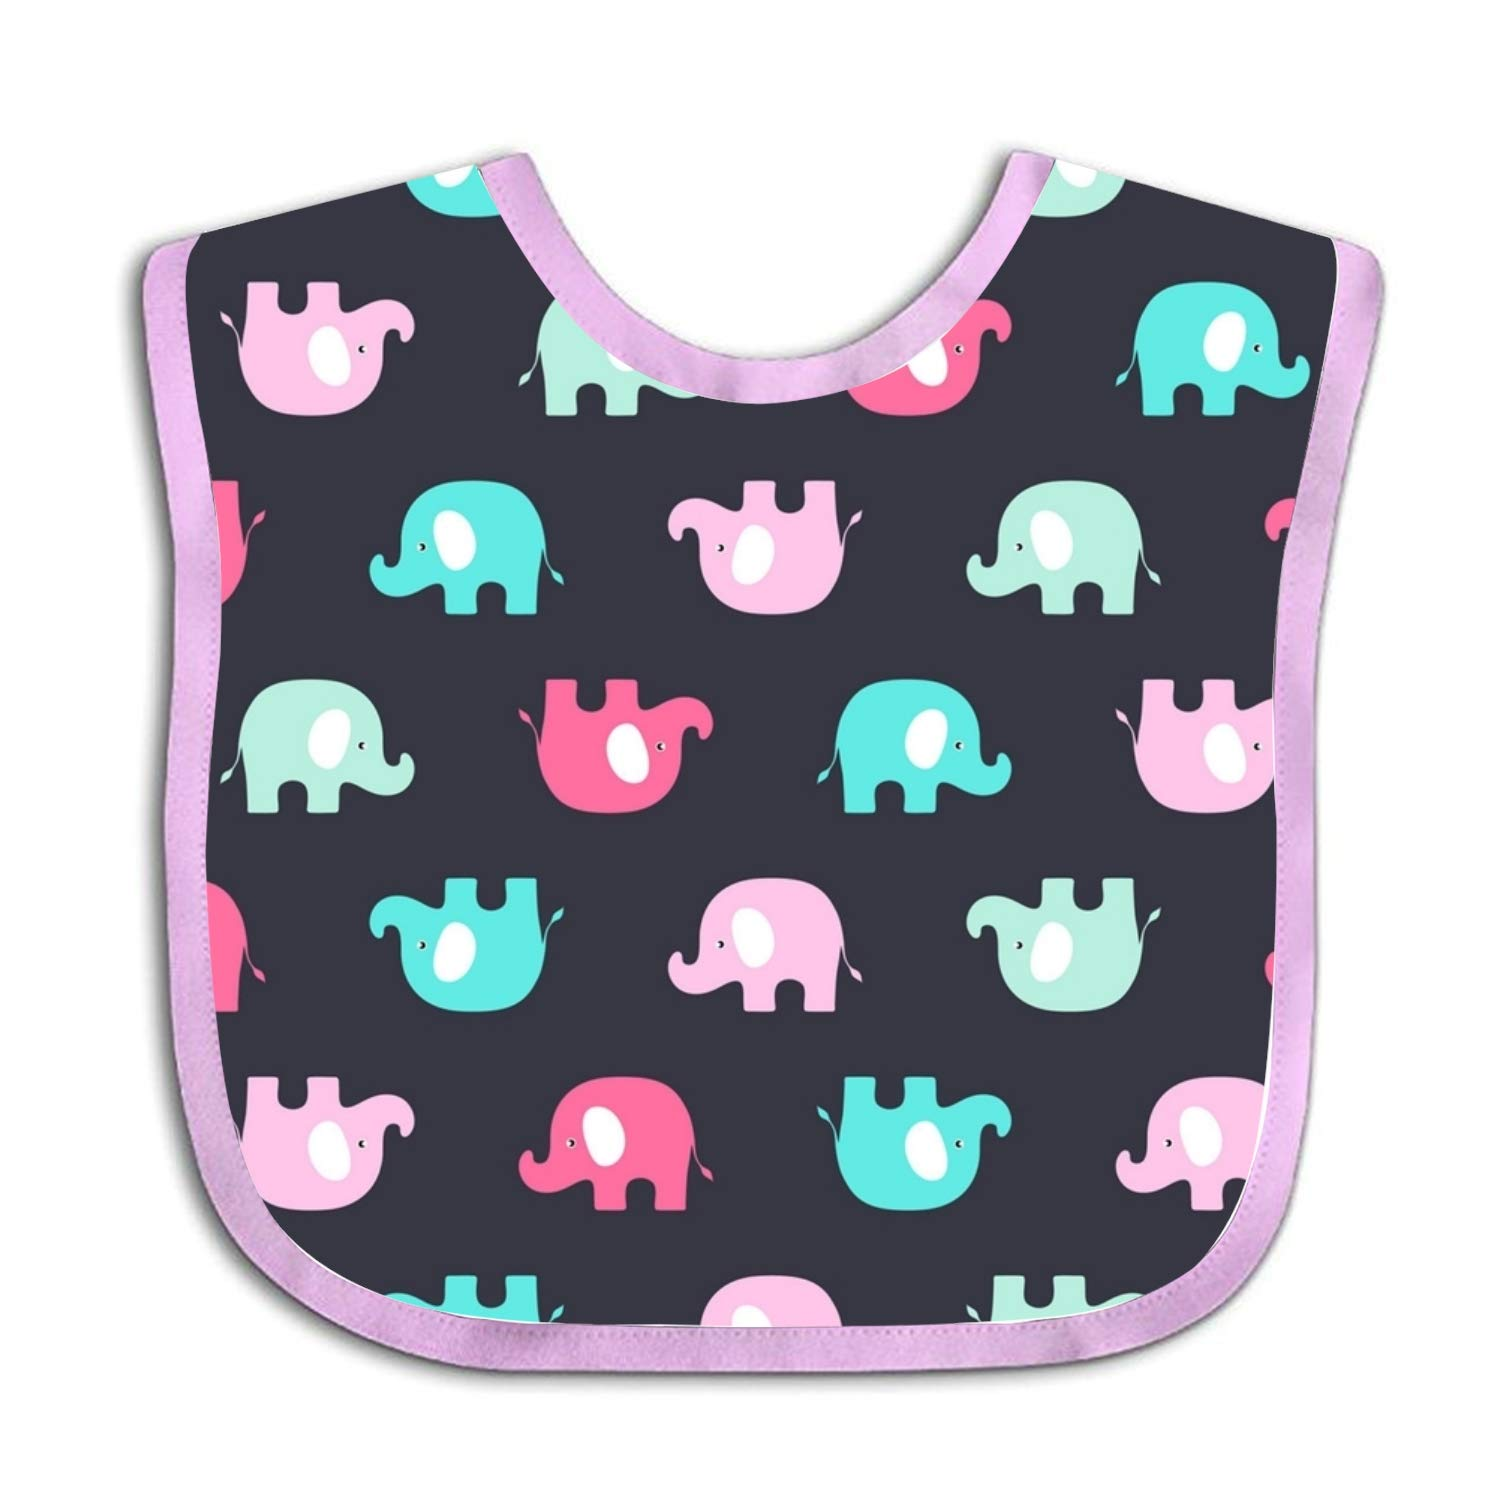 Baby Bandana Bib Super Absorbent, Soft Pink Blue Elephant Drool Bibs for Boys & Girls